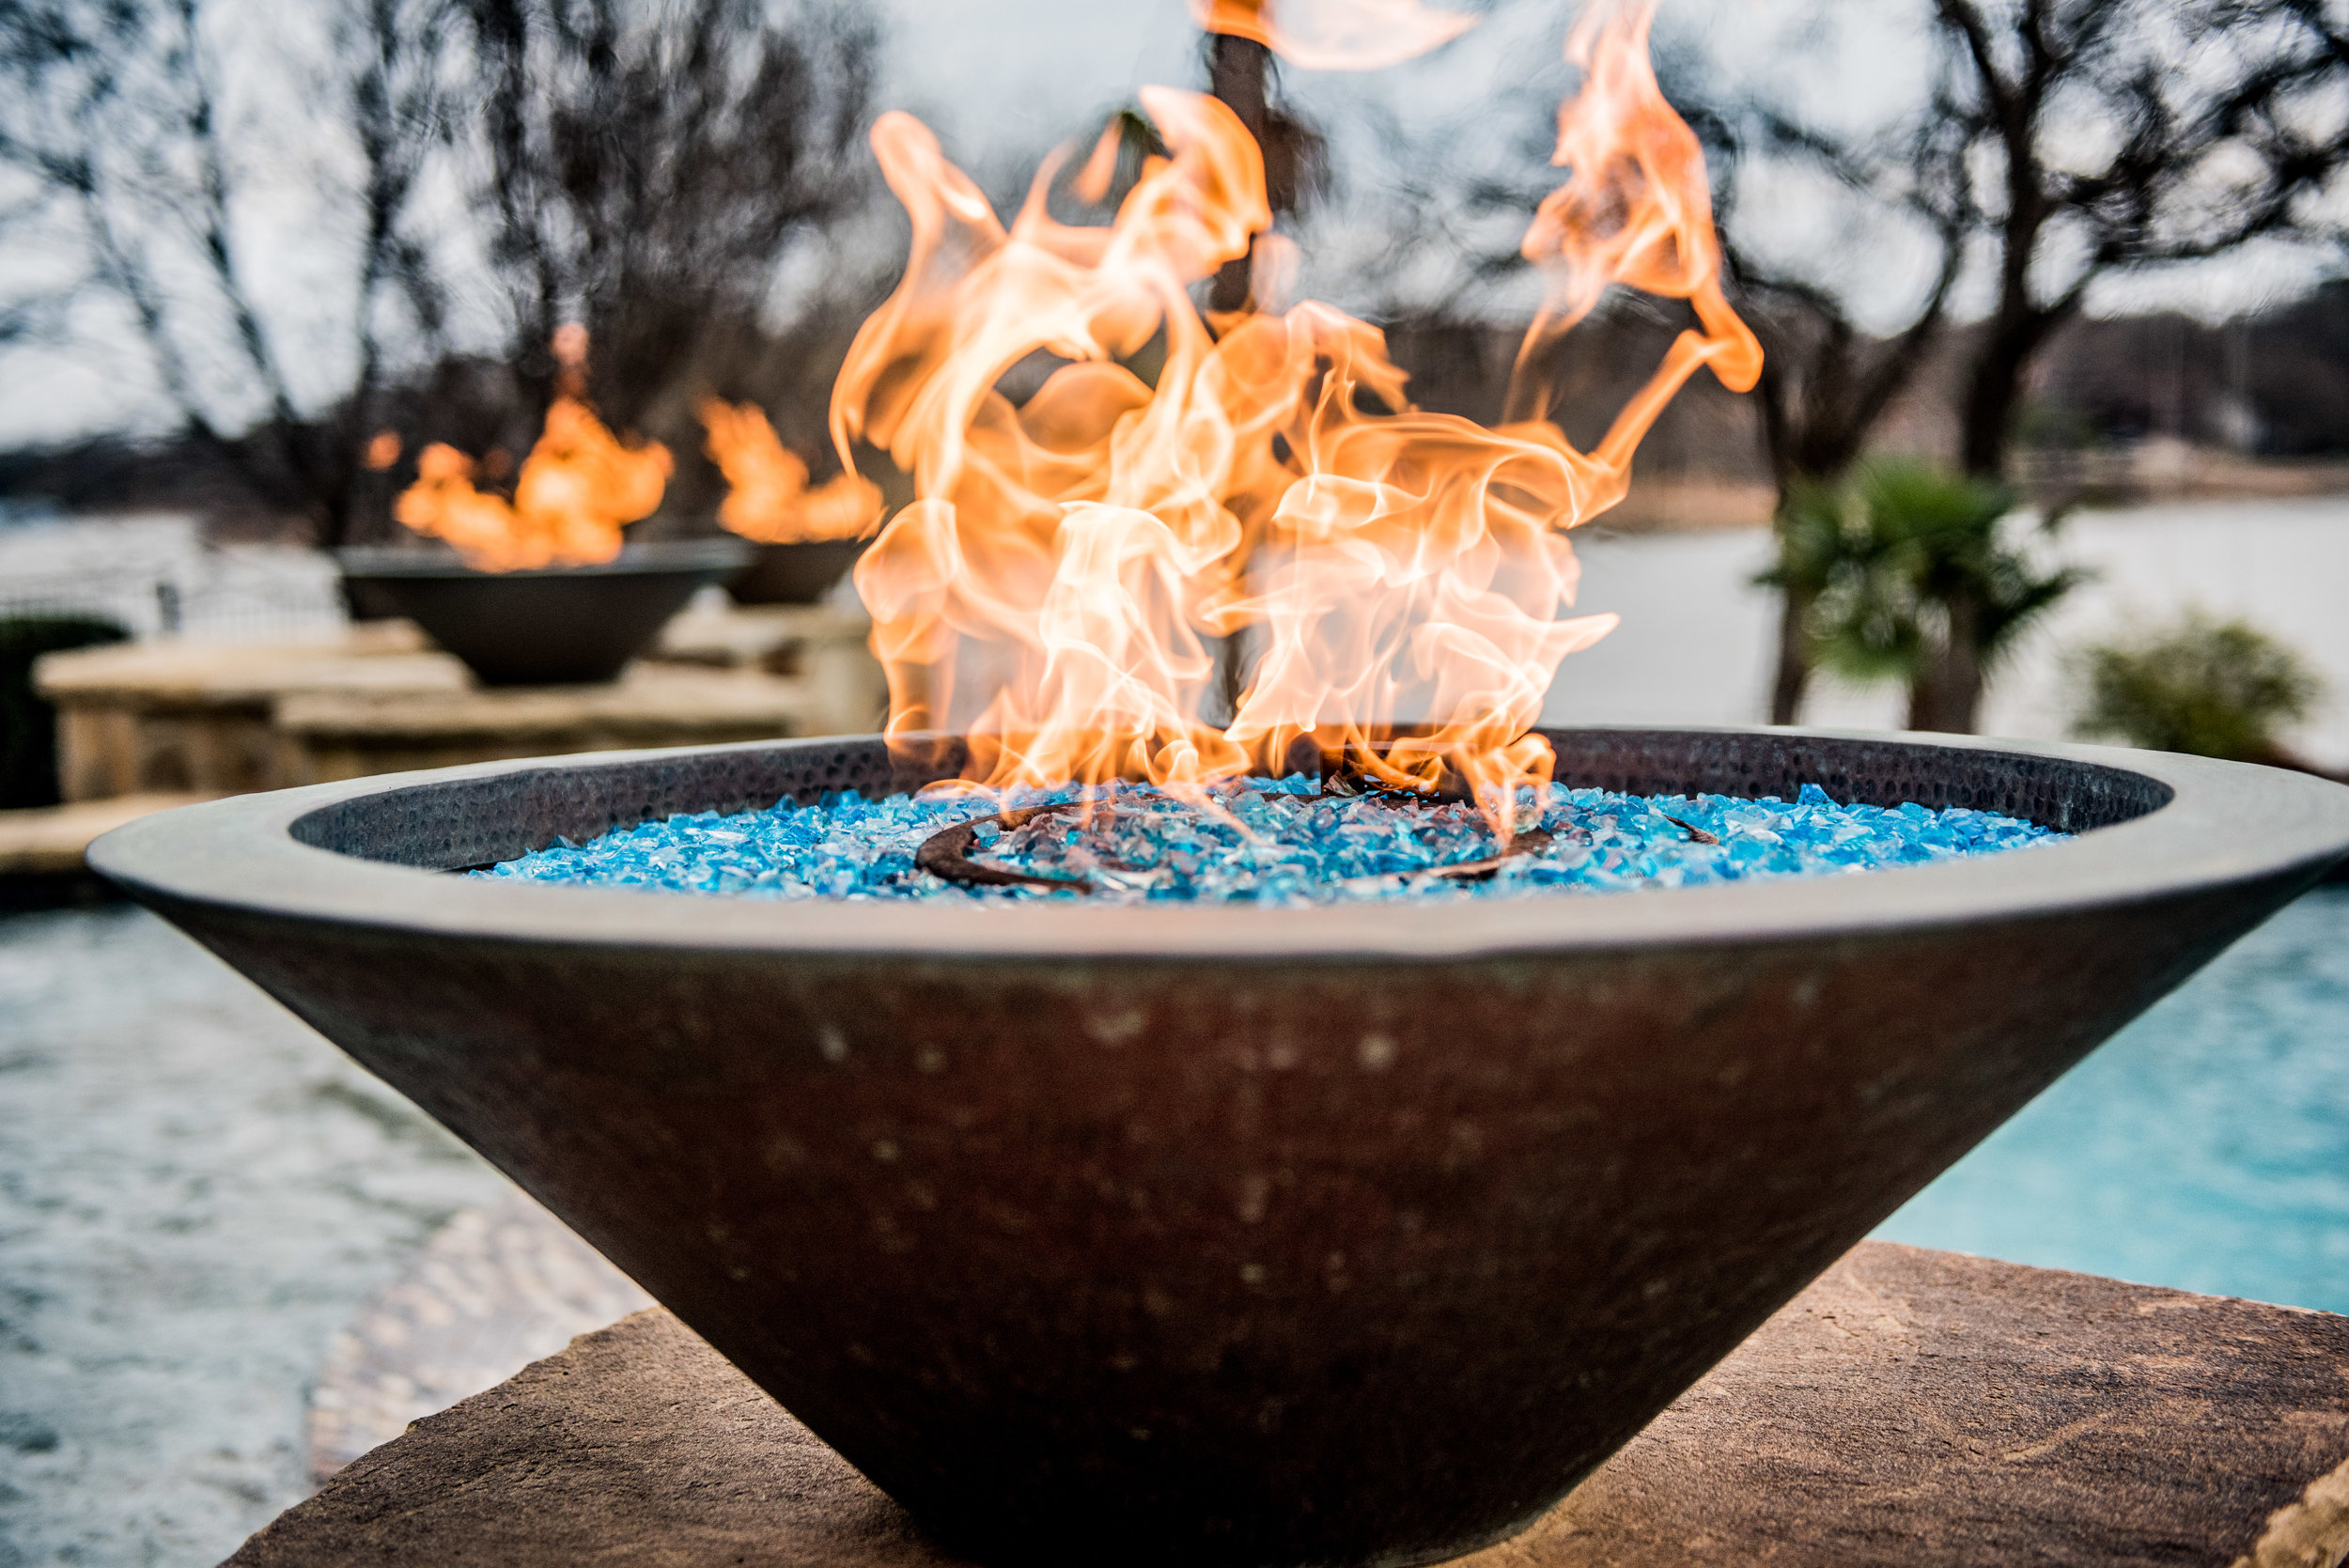 BMR pool and patio fire bowl 2.jpg